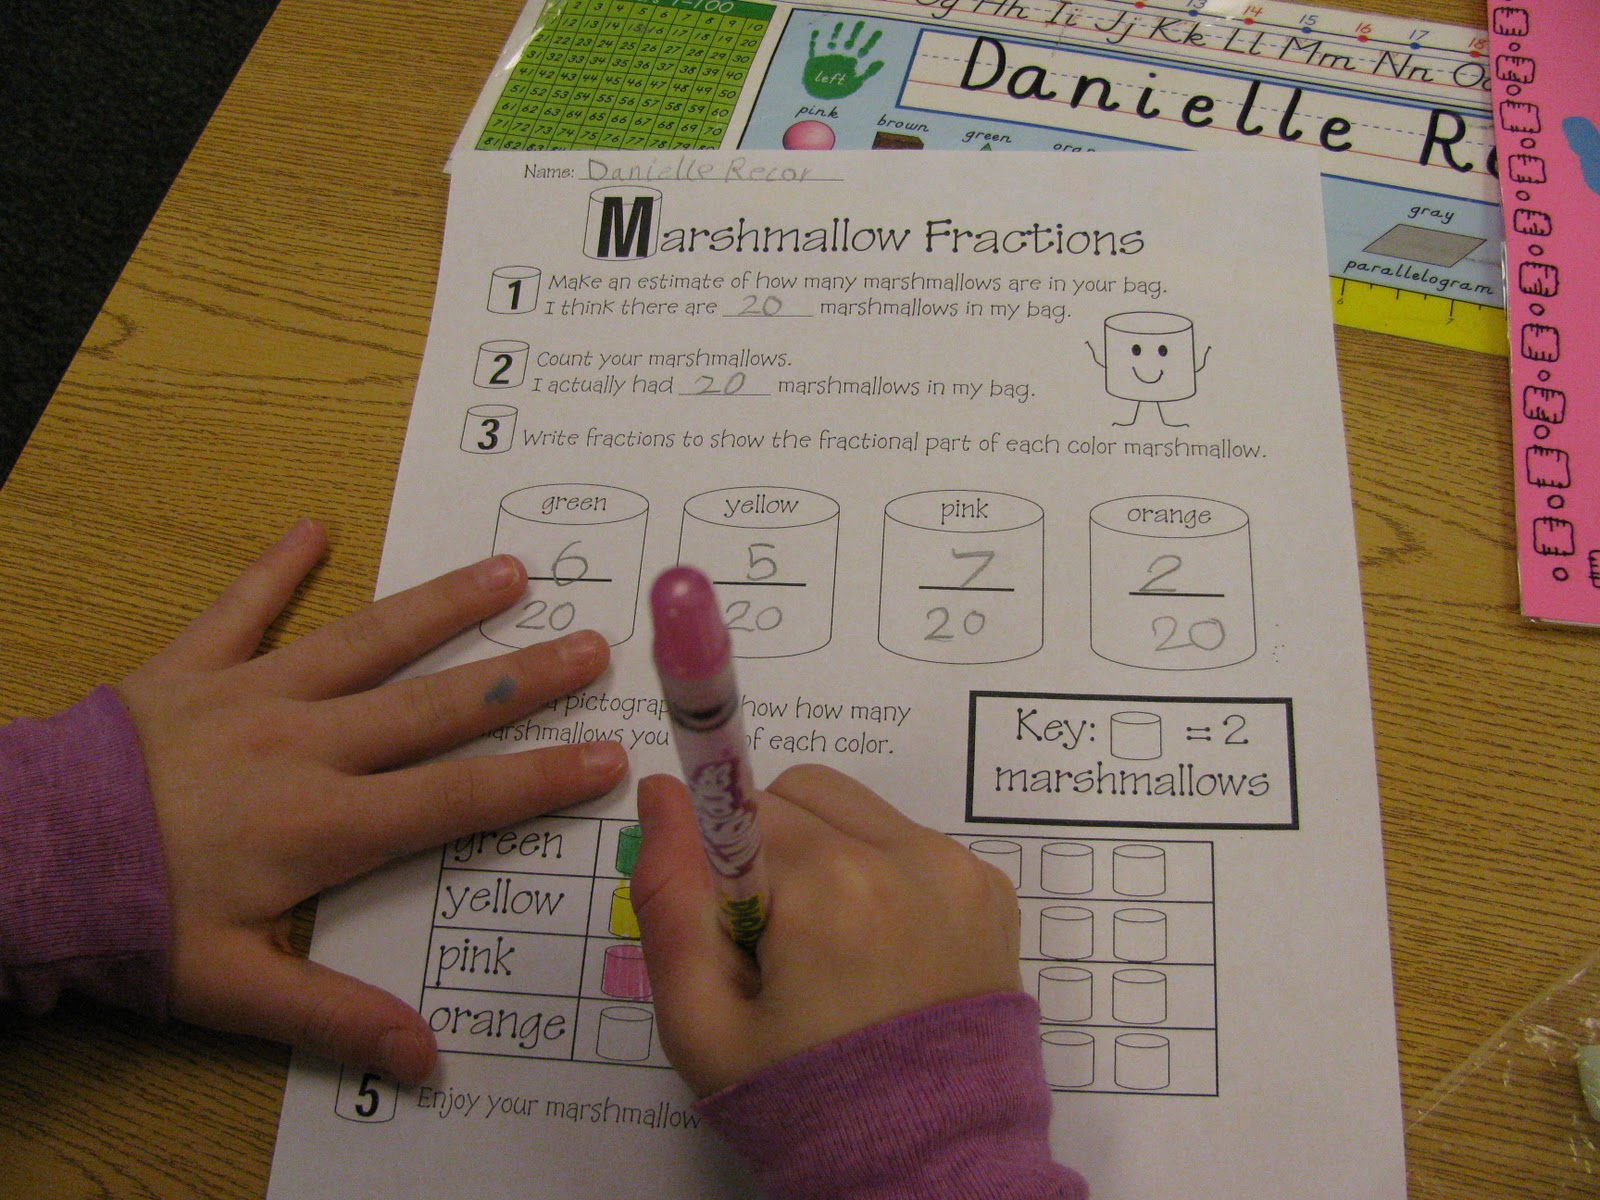 Fractions in action skittles share mini marshmallows hershey bars and pizza